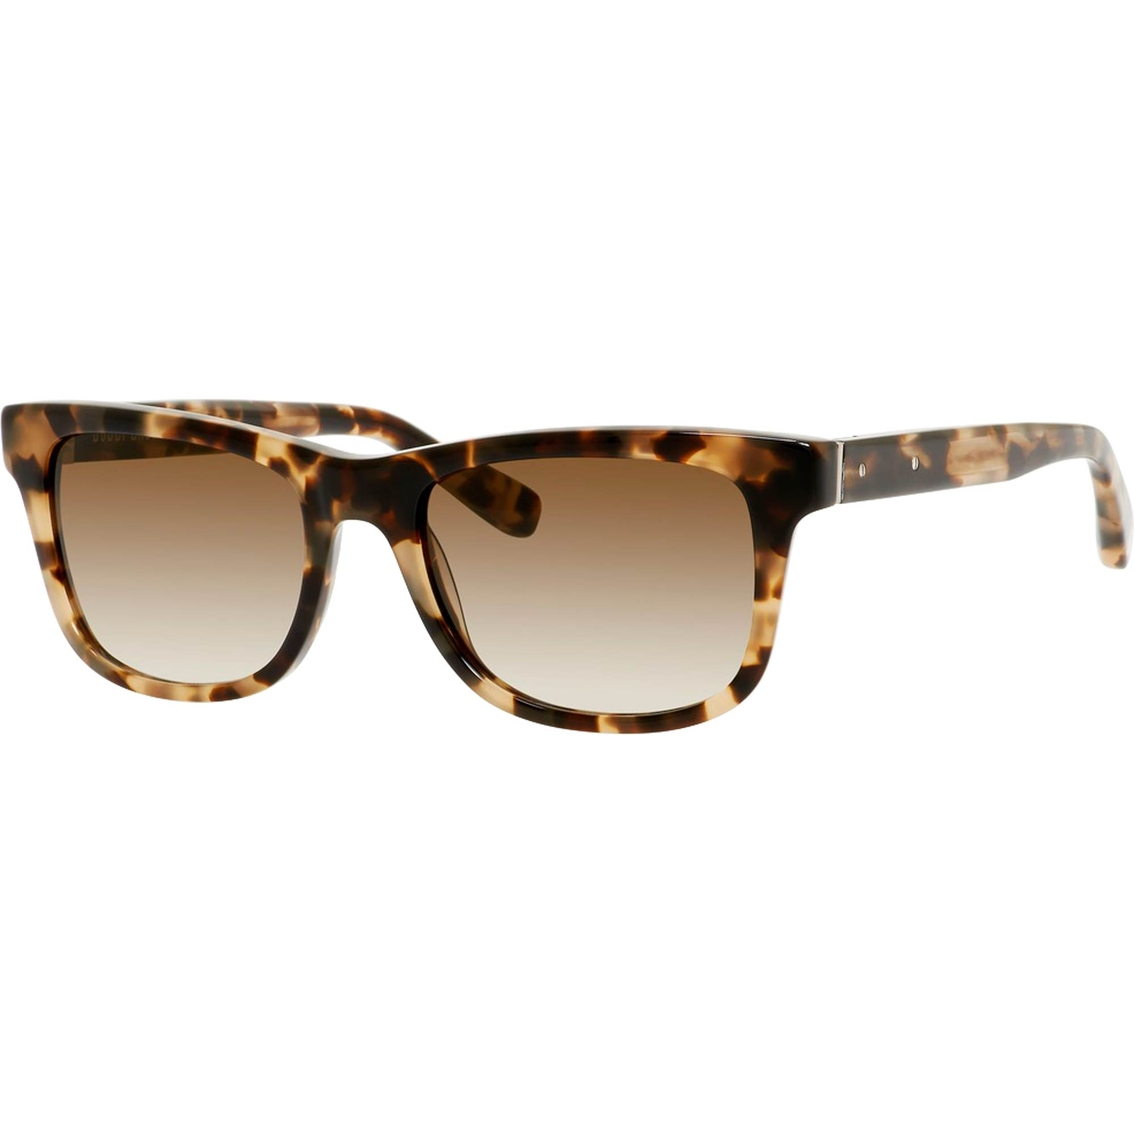 Steve Sunglasses  bobbi brown the steve sunglasses women s sunglasses apparel